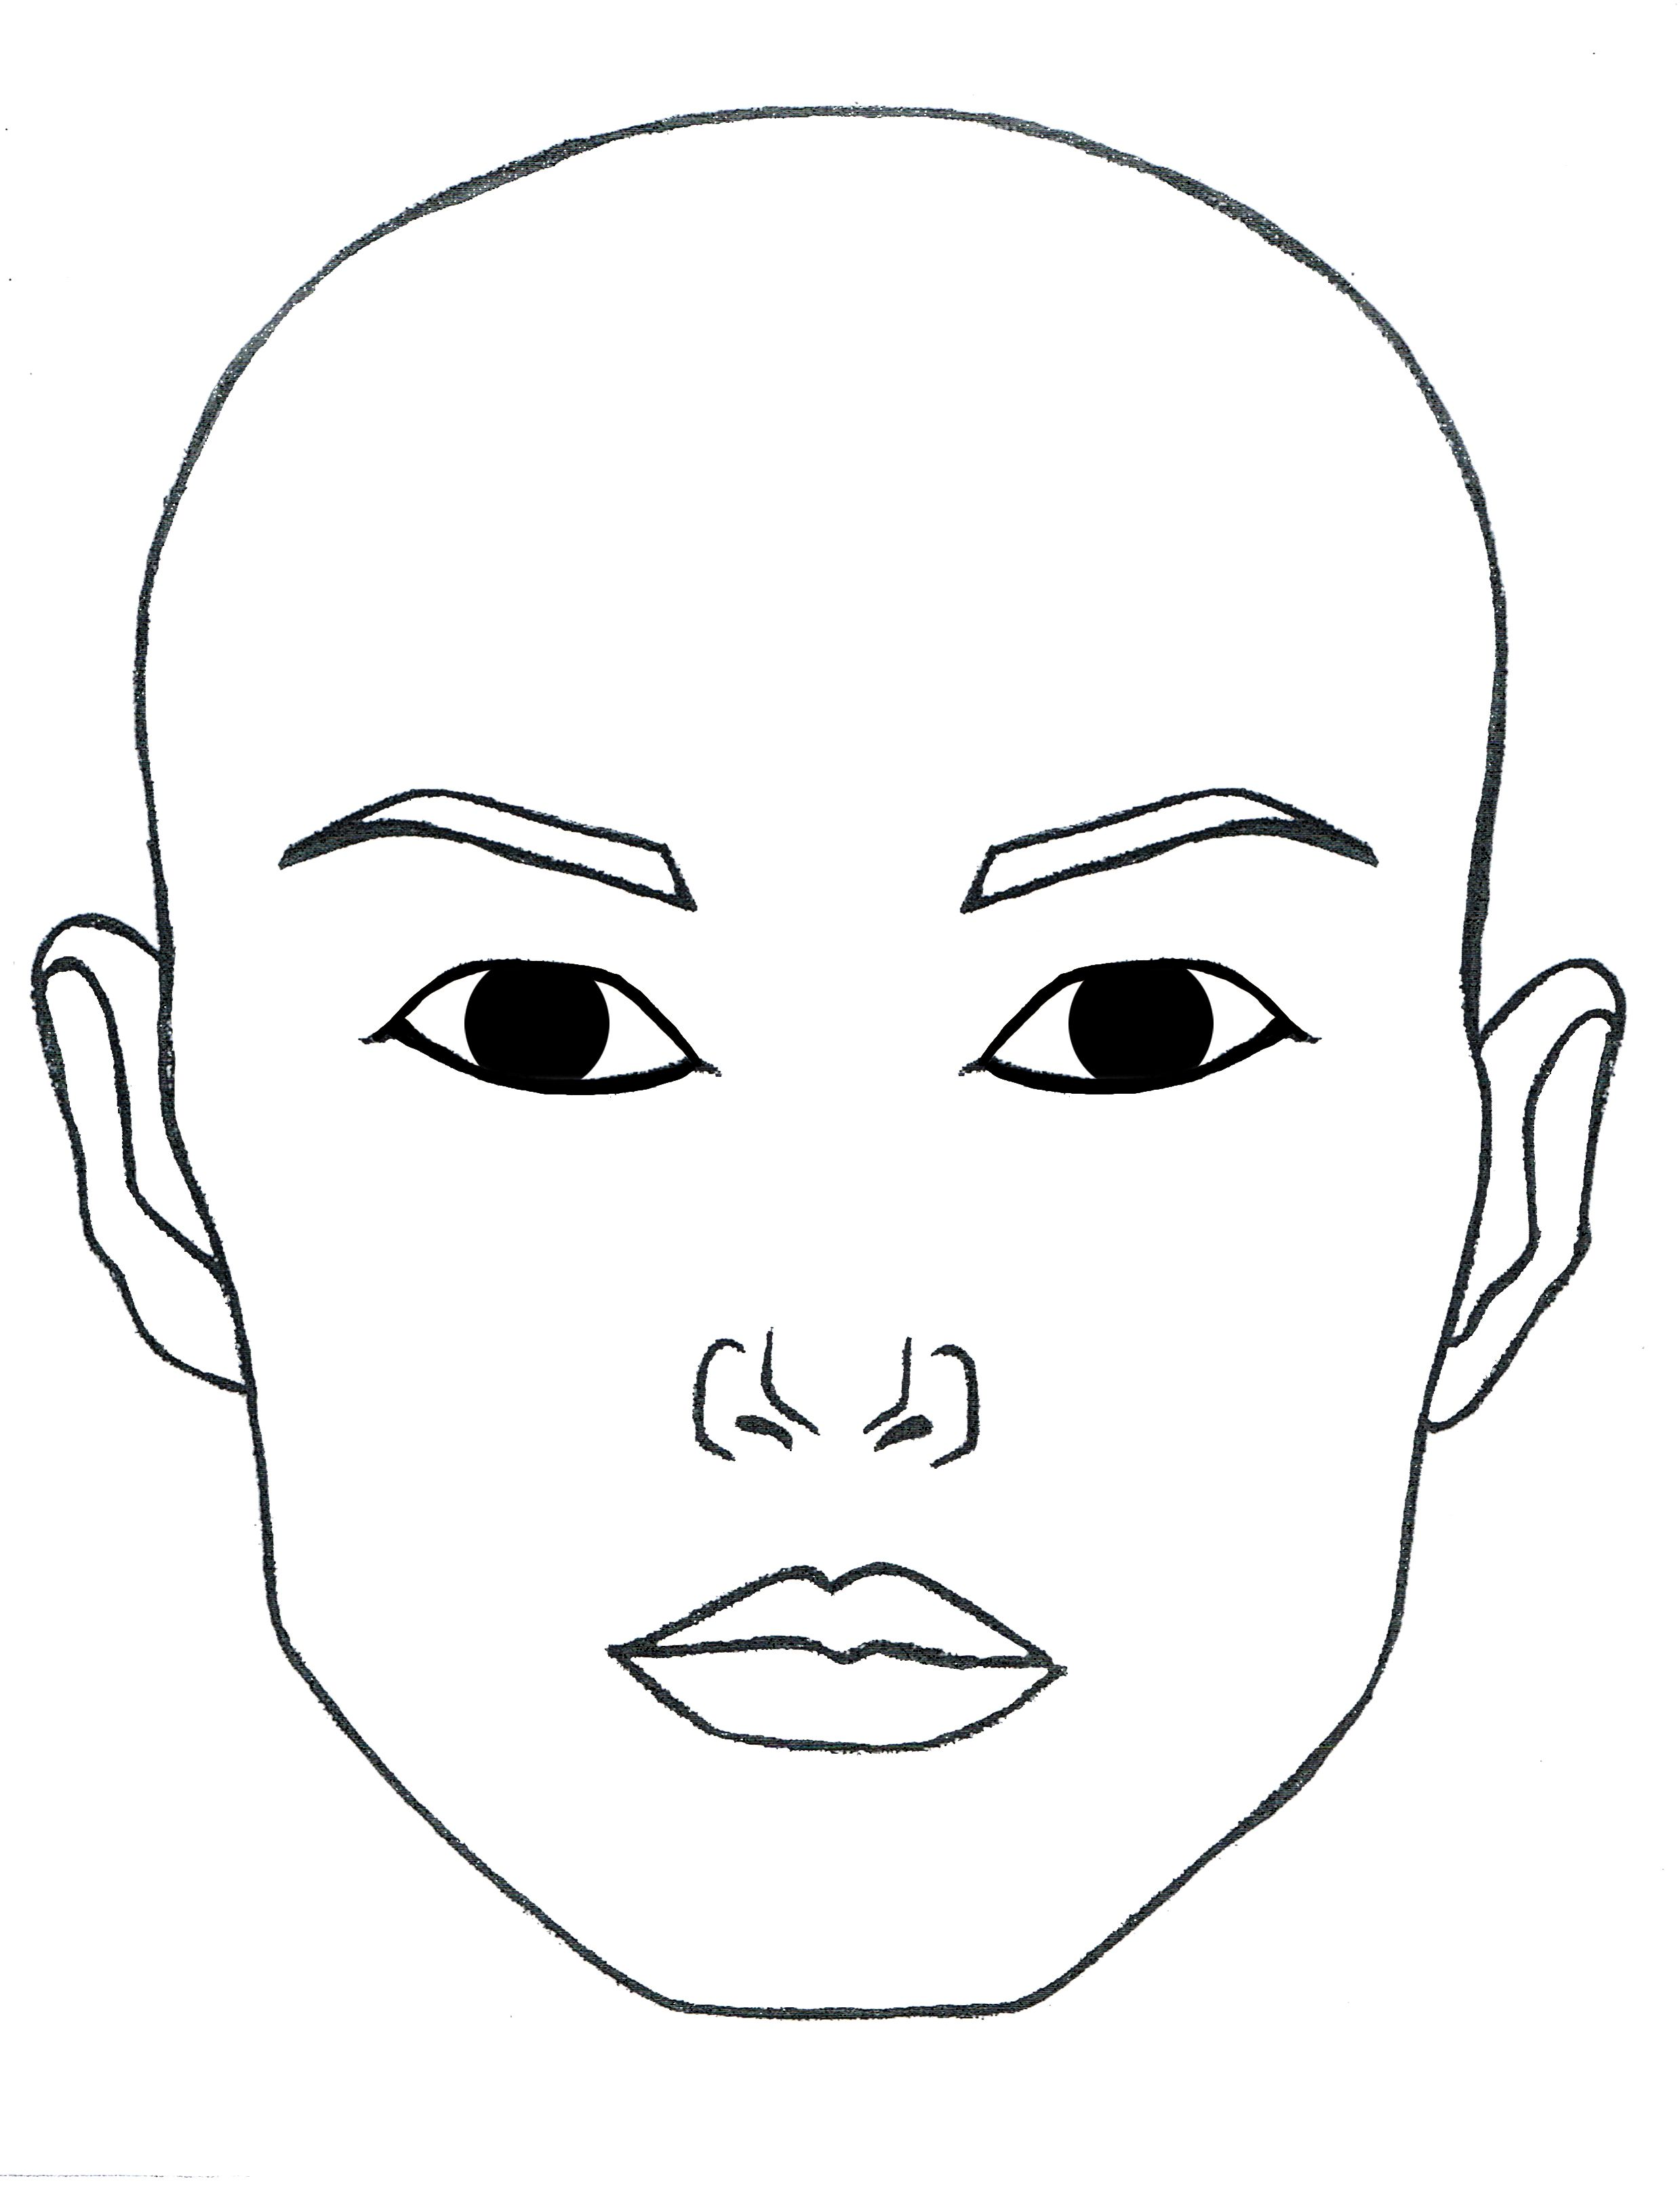 Blank Open Eyes Face To Print And Laminate Or Paint For